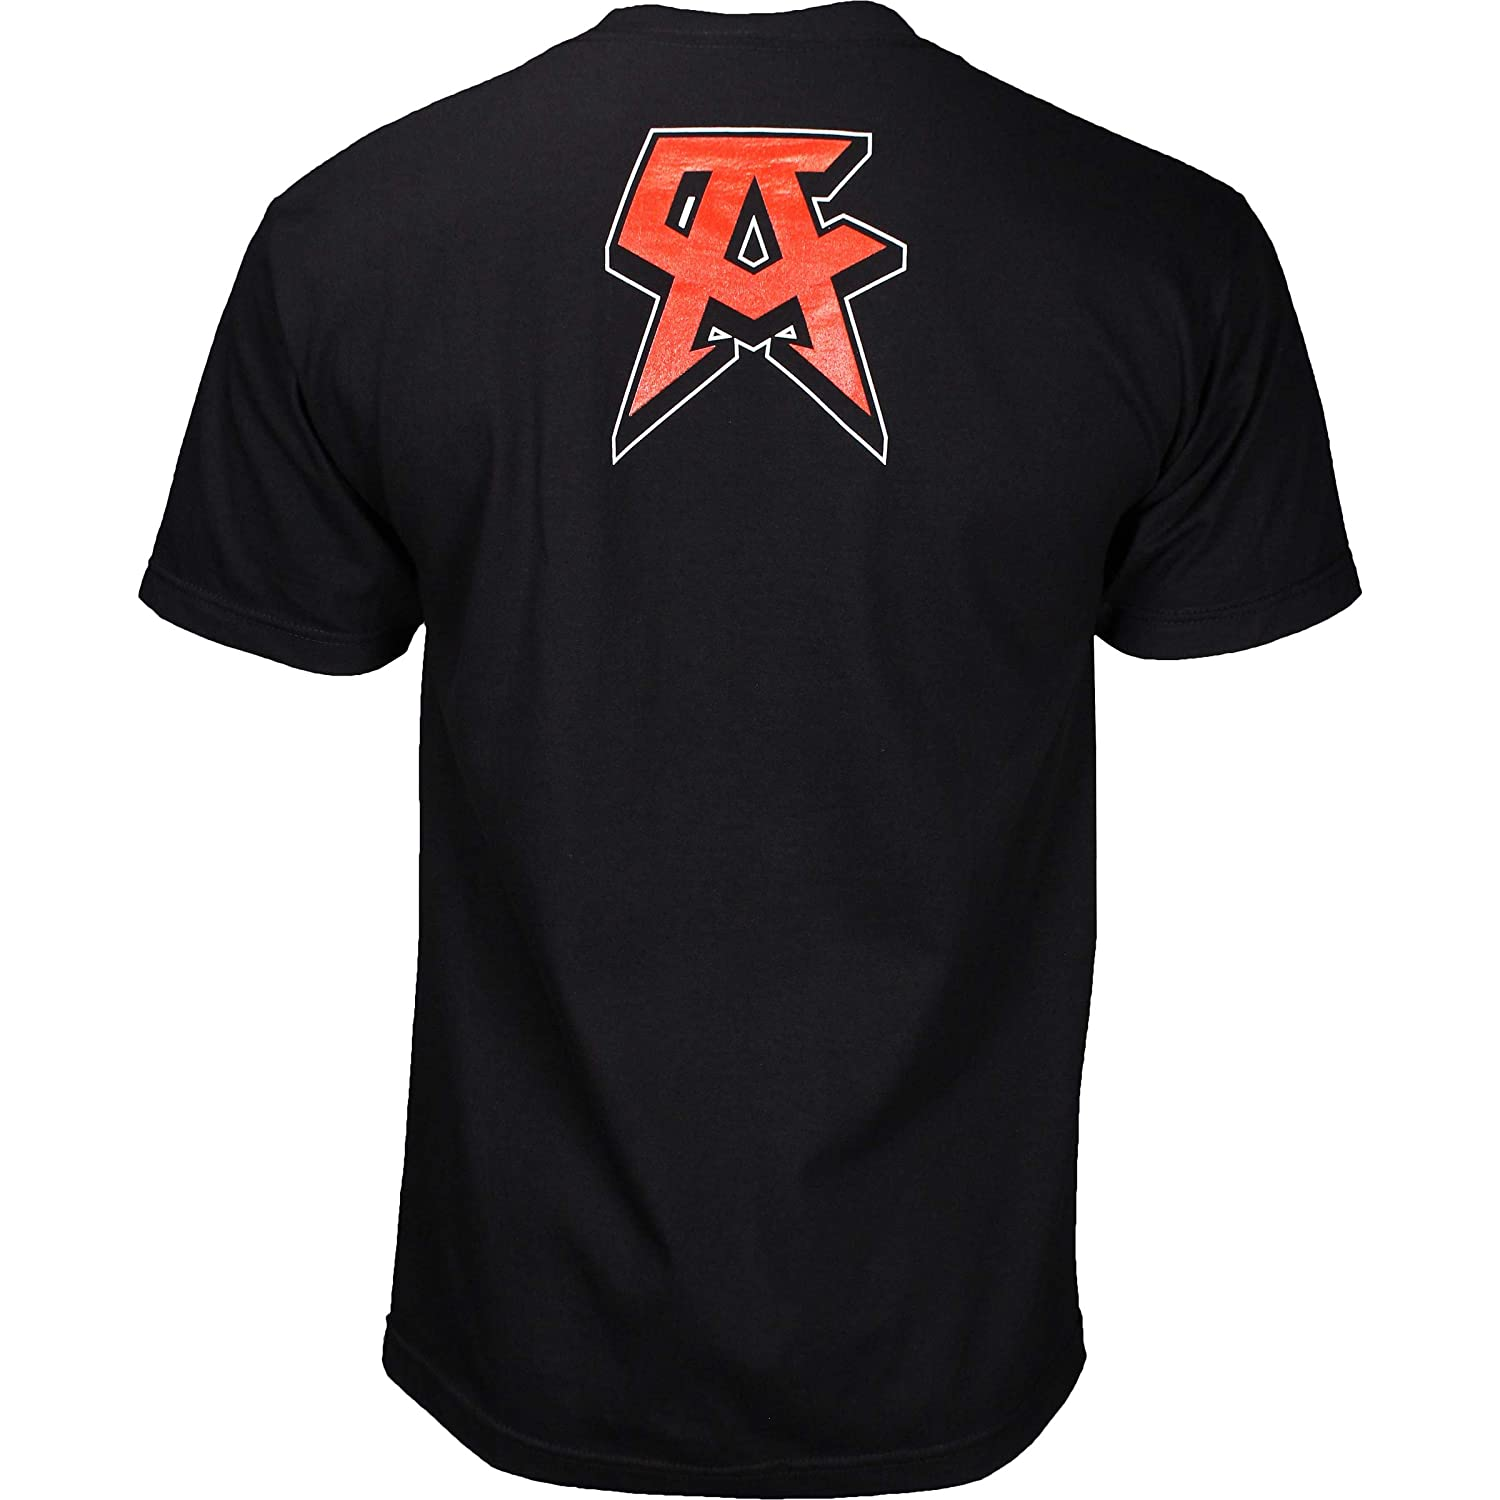 8c0acadf Amazon.com: Canelo Alvarez Brand Punch Shirt - Black - Medium: Clothing